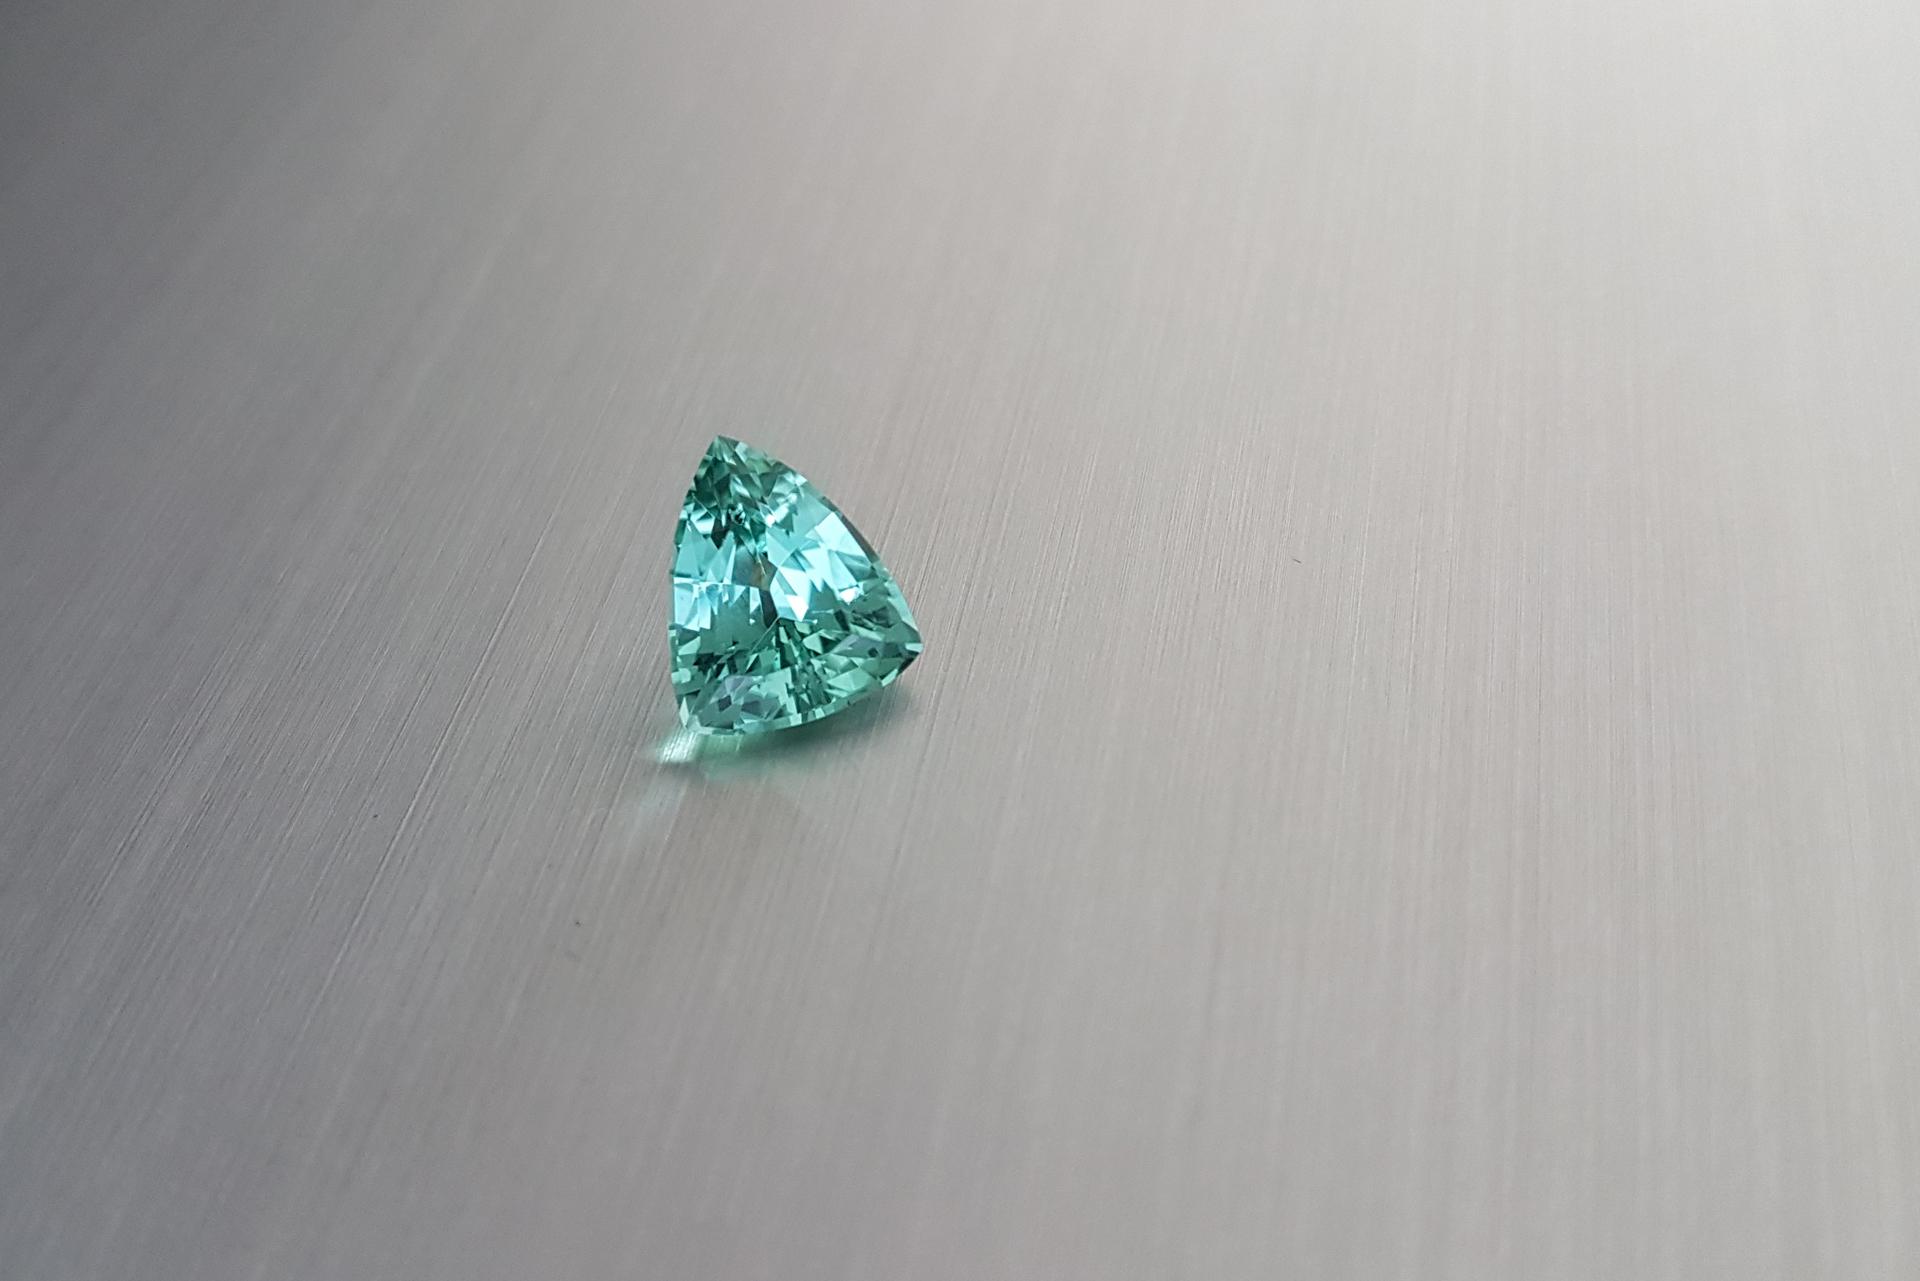 Intensly blue green coloured fancy cut tourmaline from Zylana gem collection